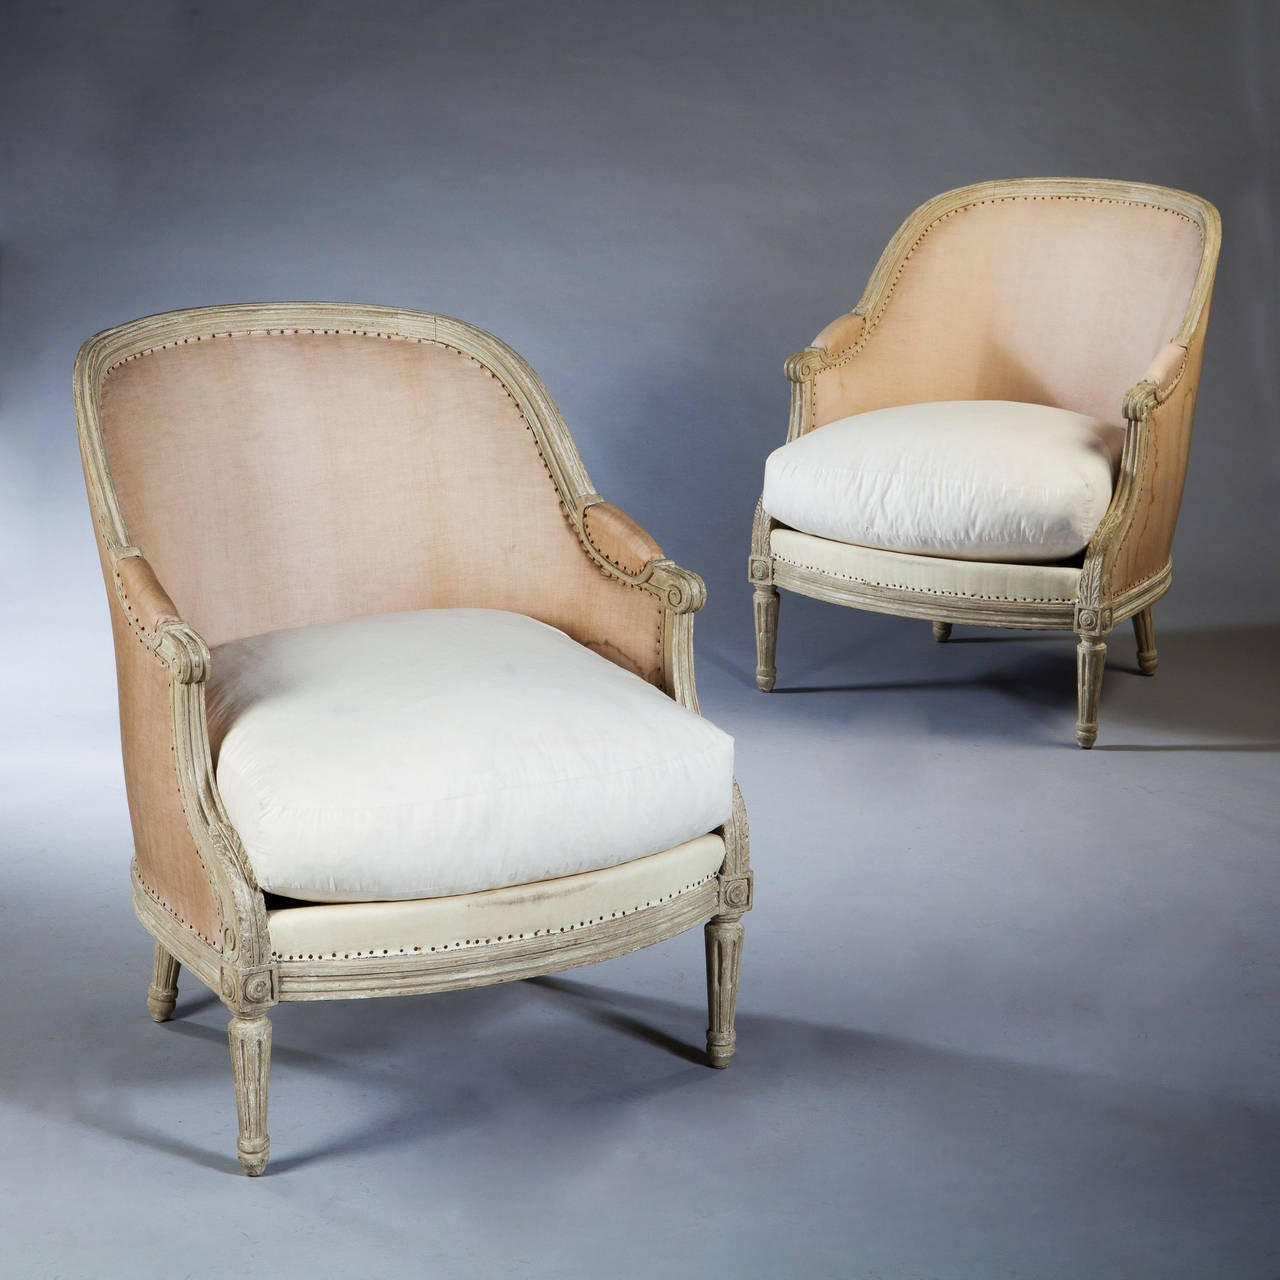 A Pair Of Period French Chairs With Missoni Fabric At 1stdibs: Fine Pair Of 19th Century Neo Classical French Bergere